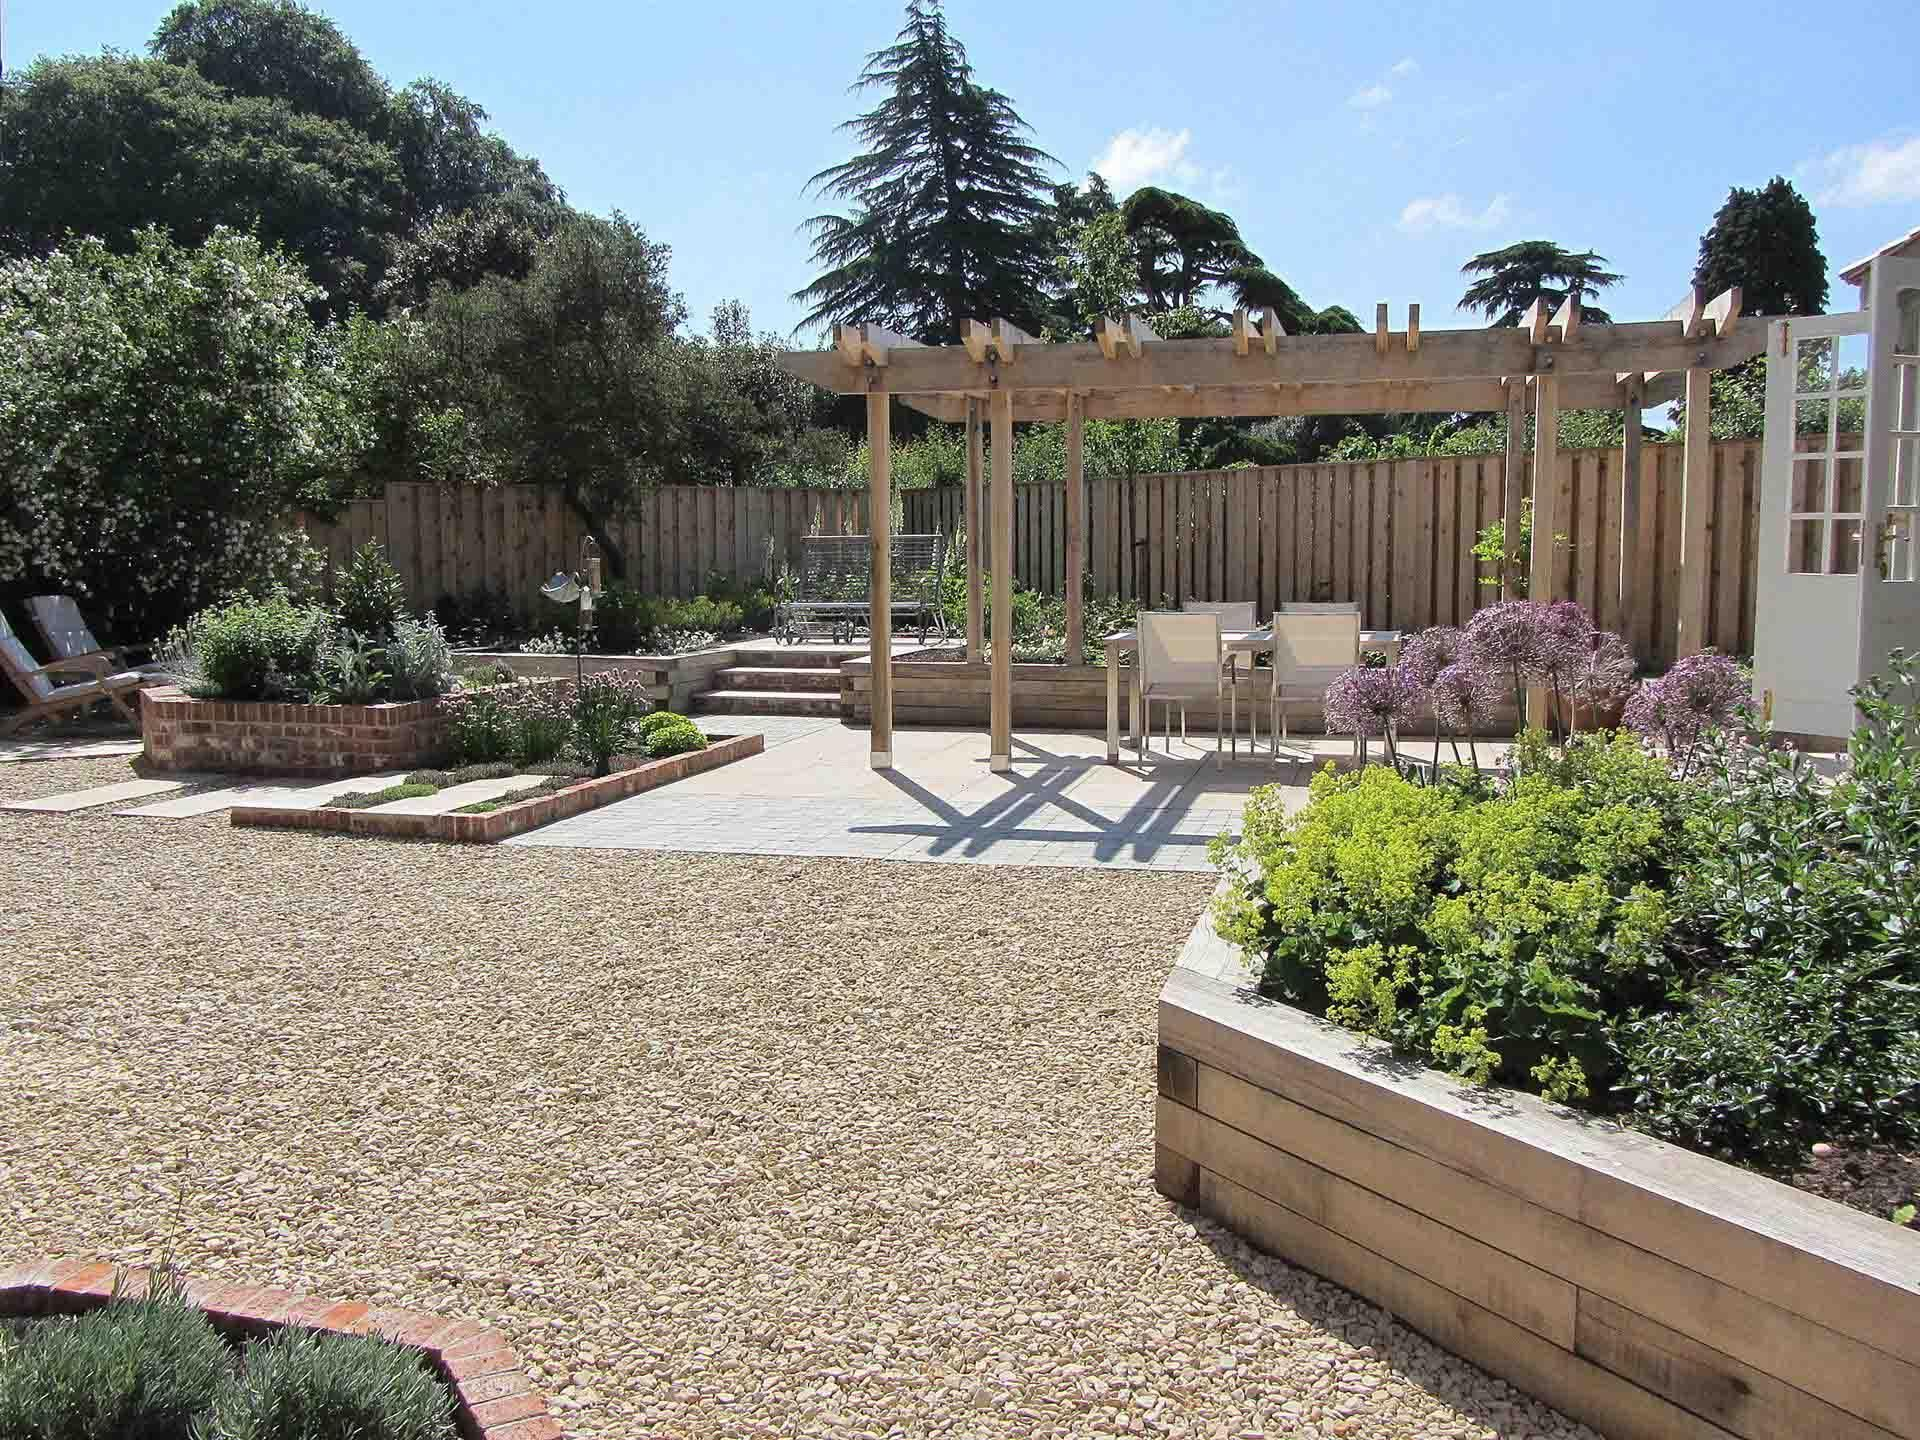 bespoke oak pergola raised oak sleeper beds